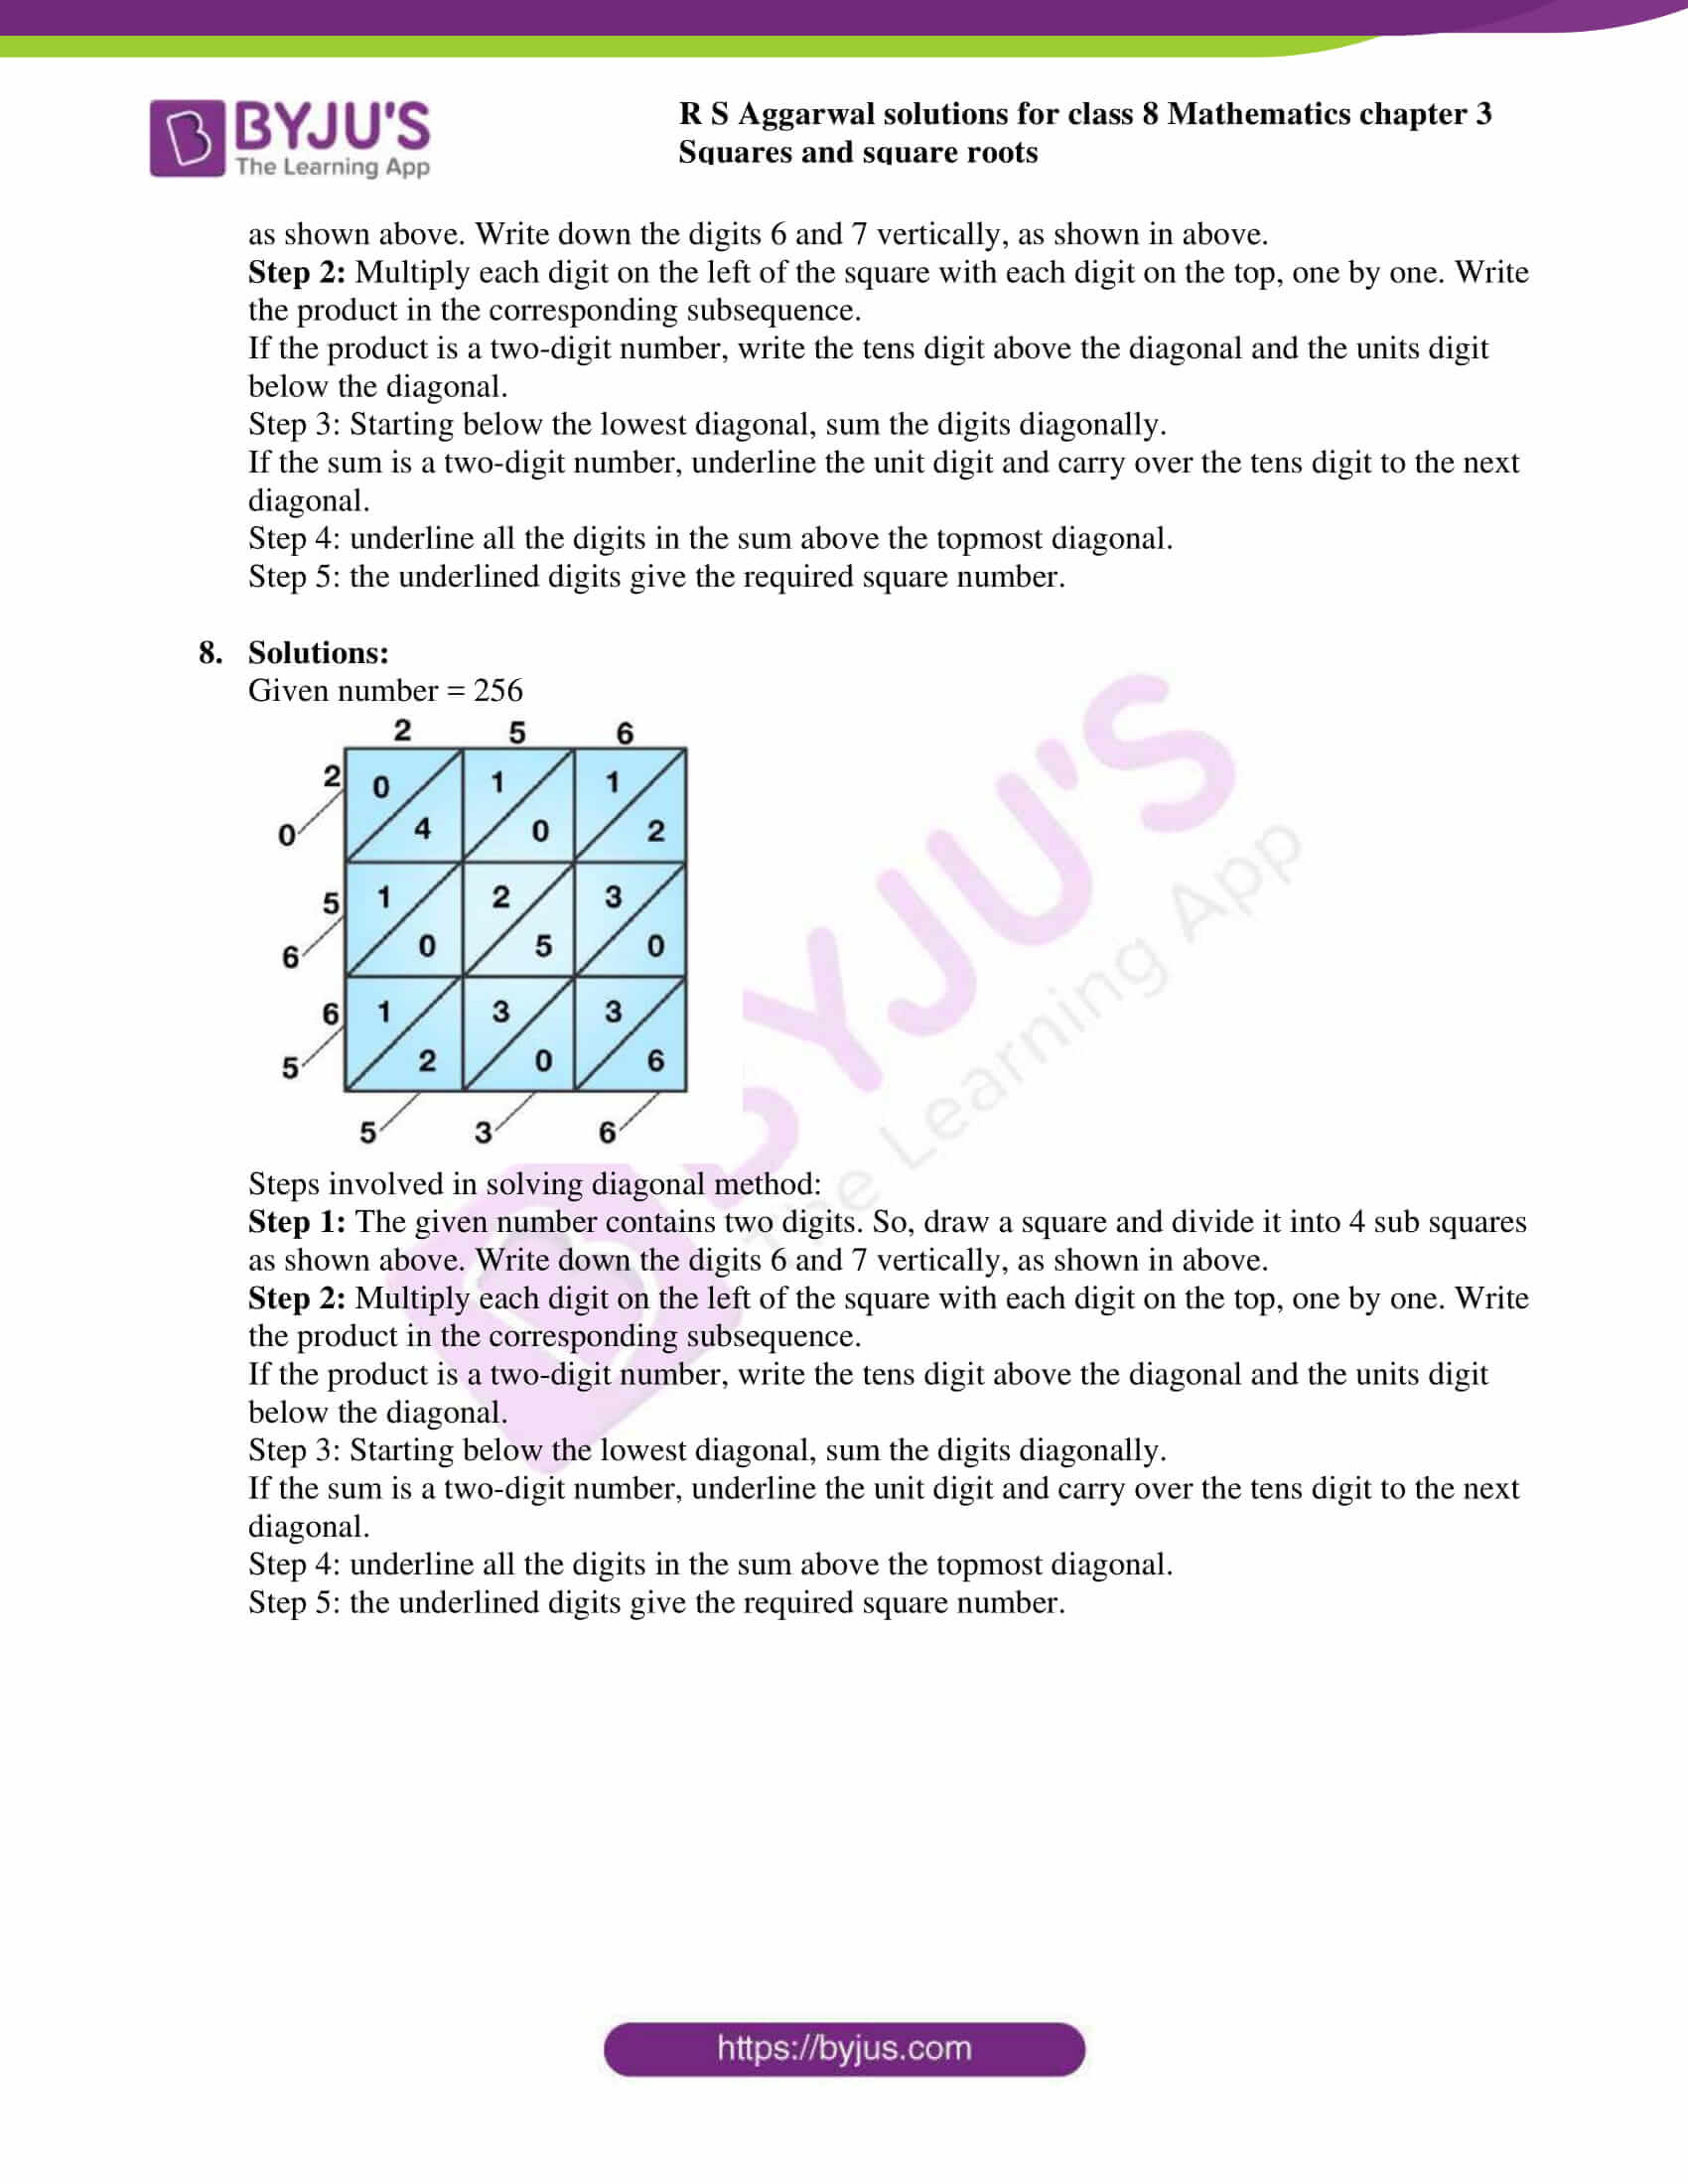 rs aggarwal solutions class 8 maths chapter 3c